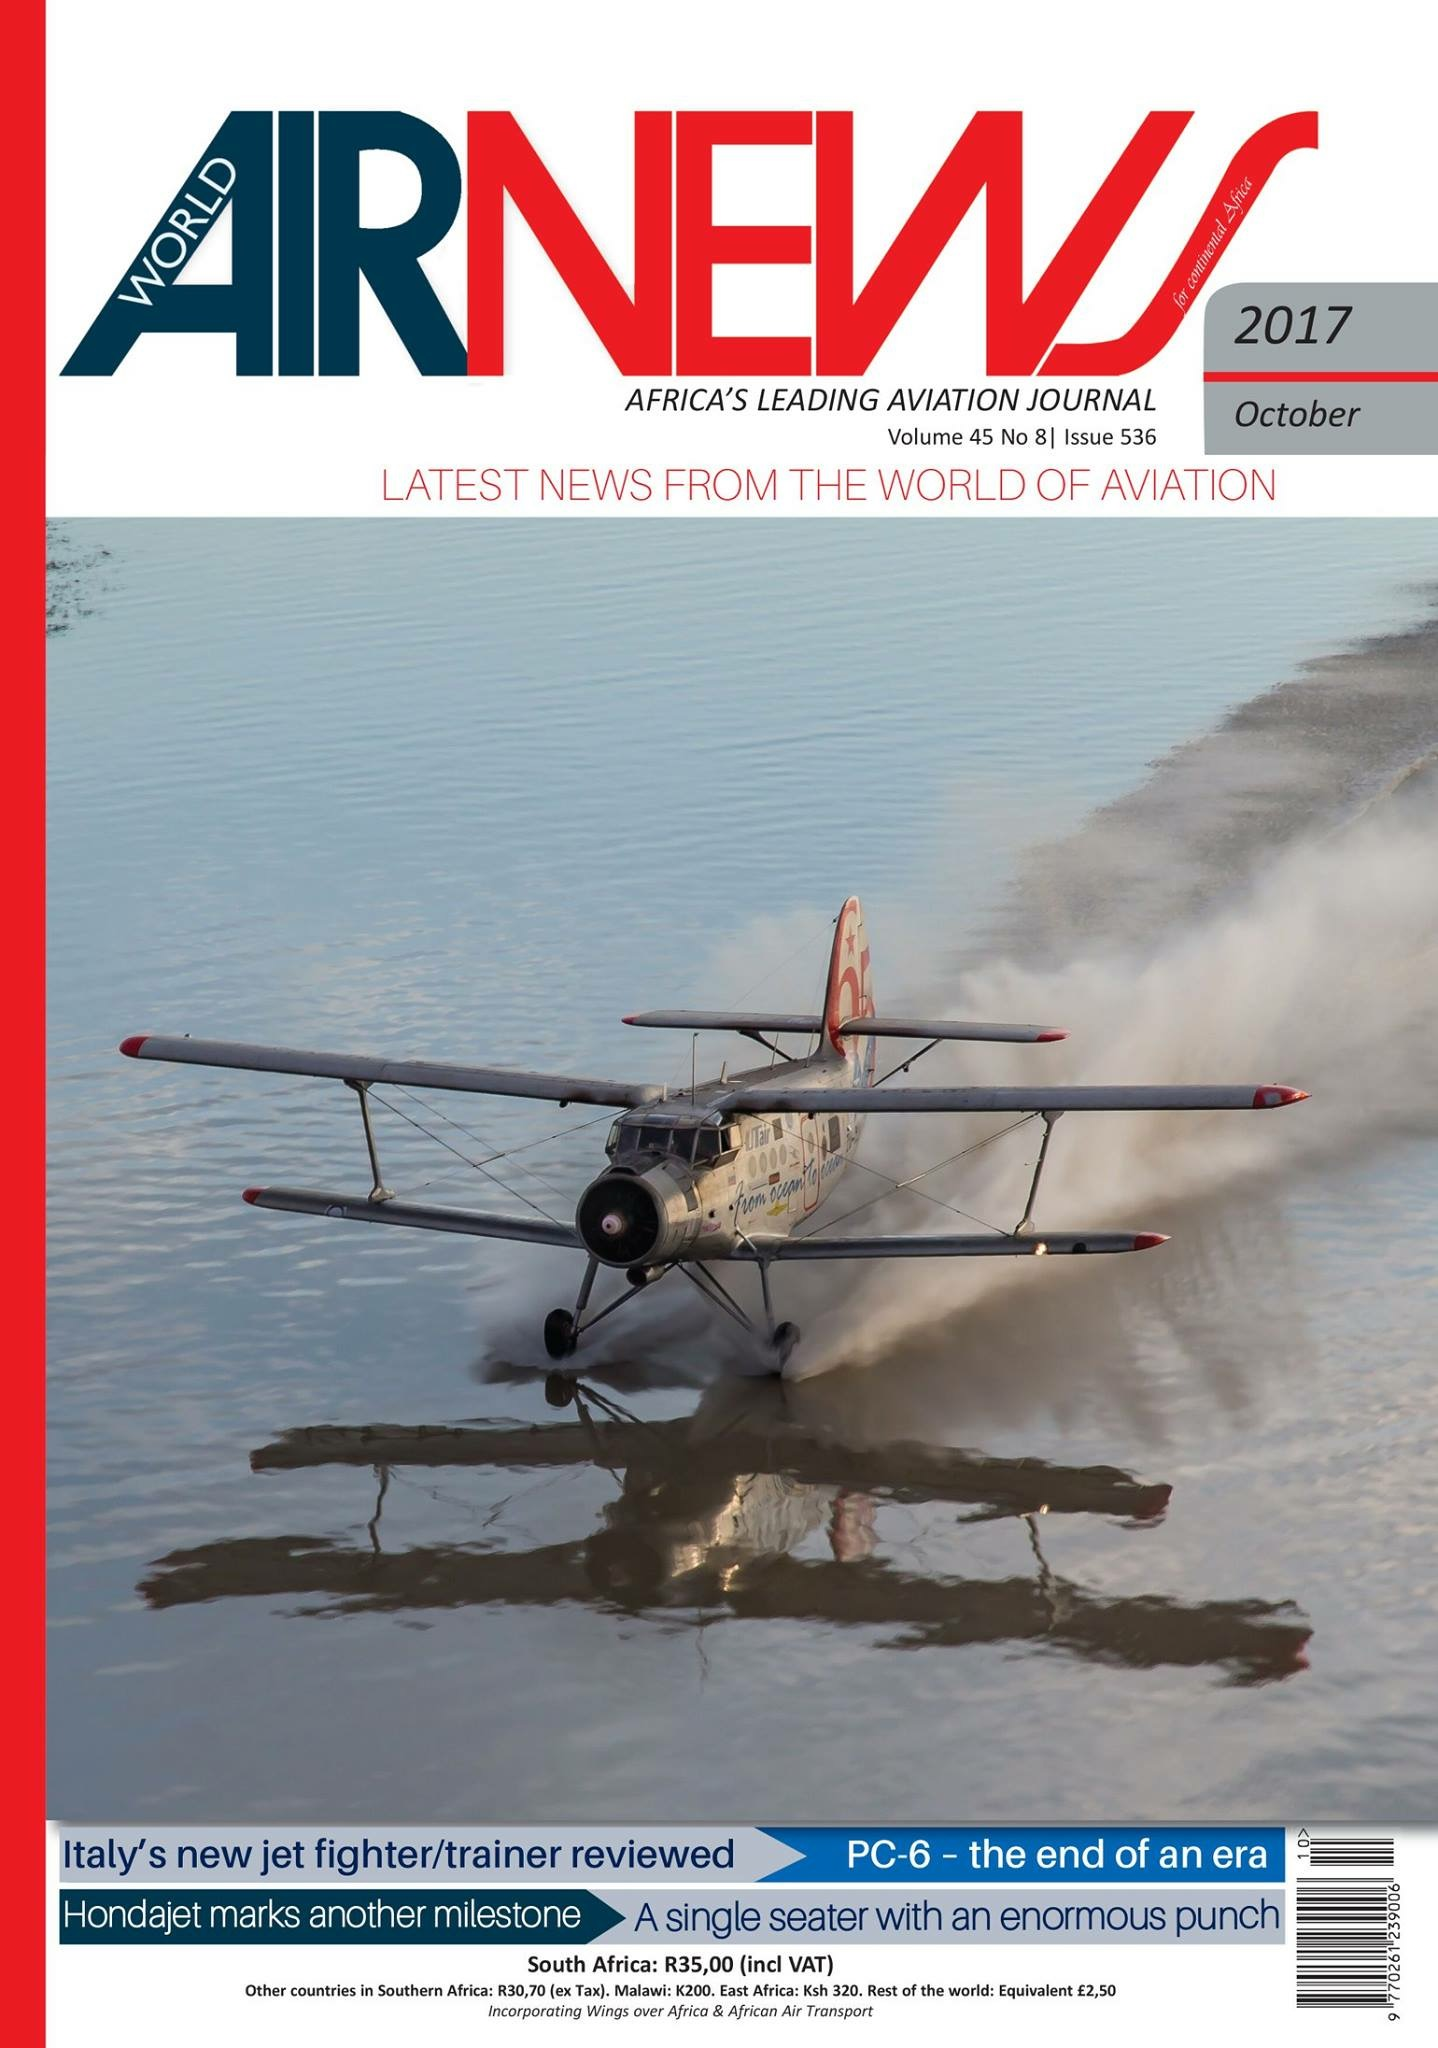 Airnews is Africa's oldest aviation magazine.